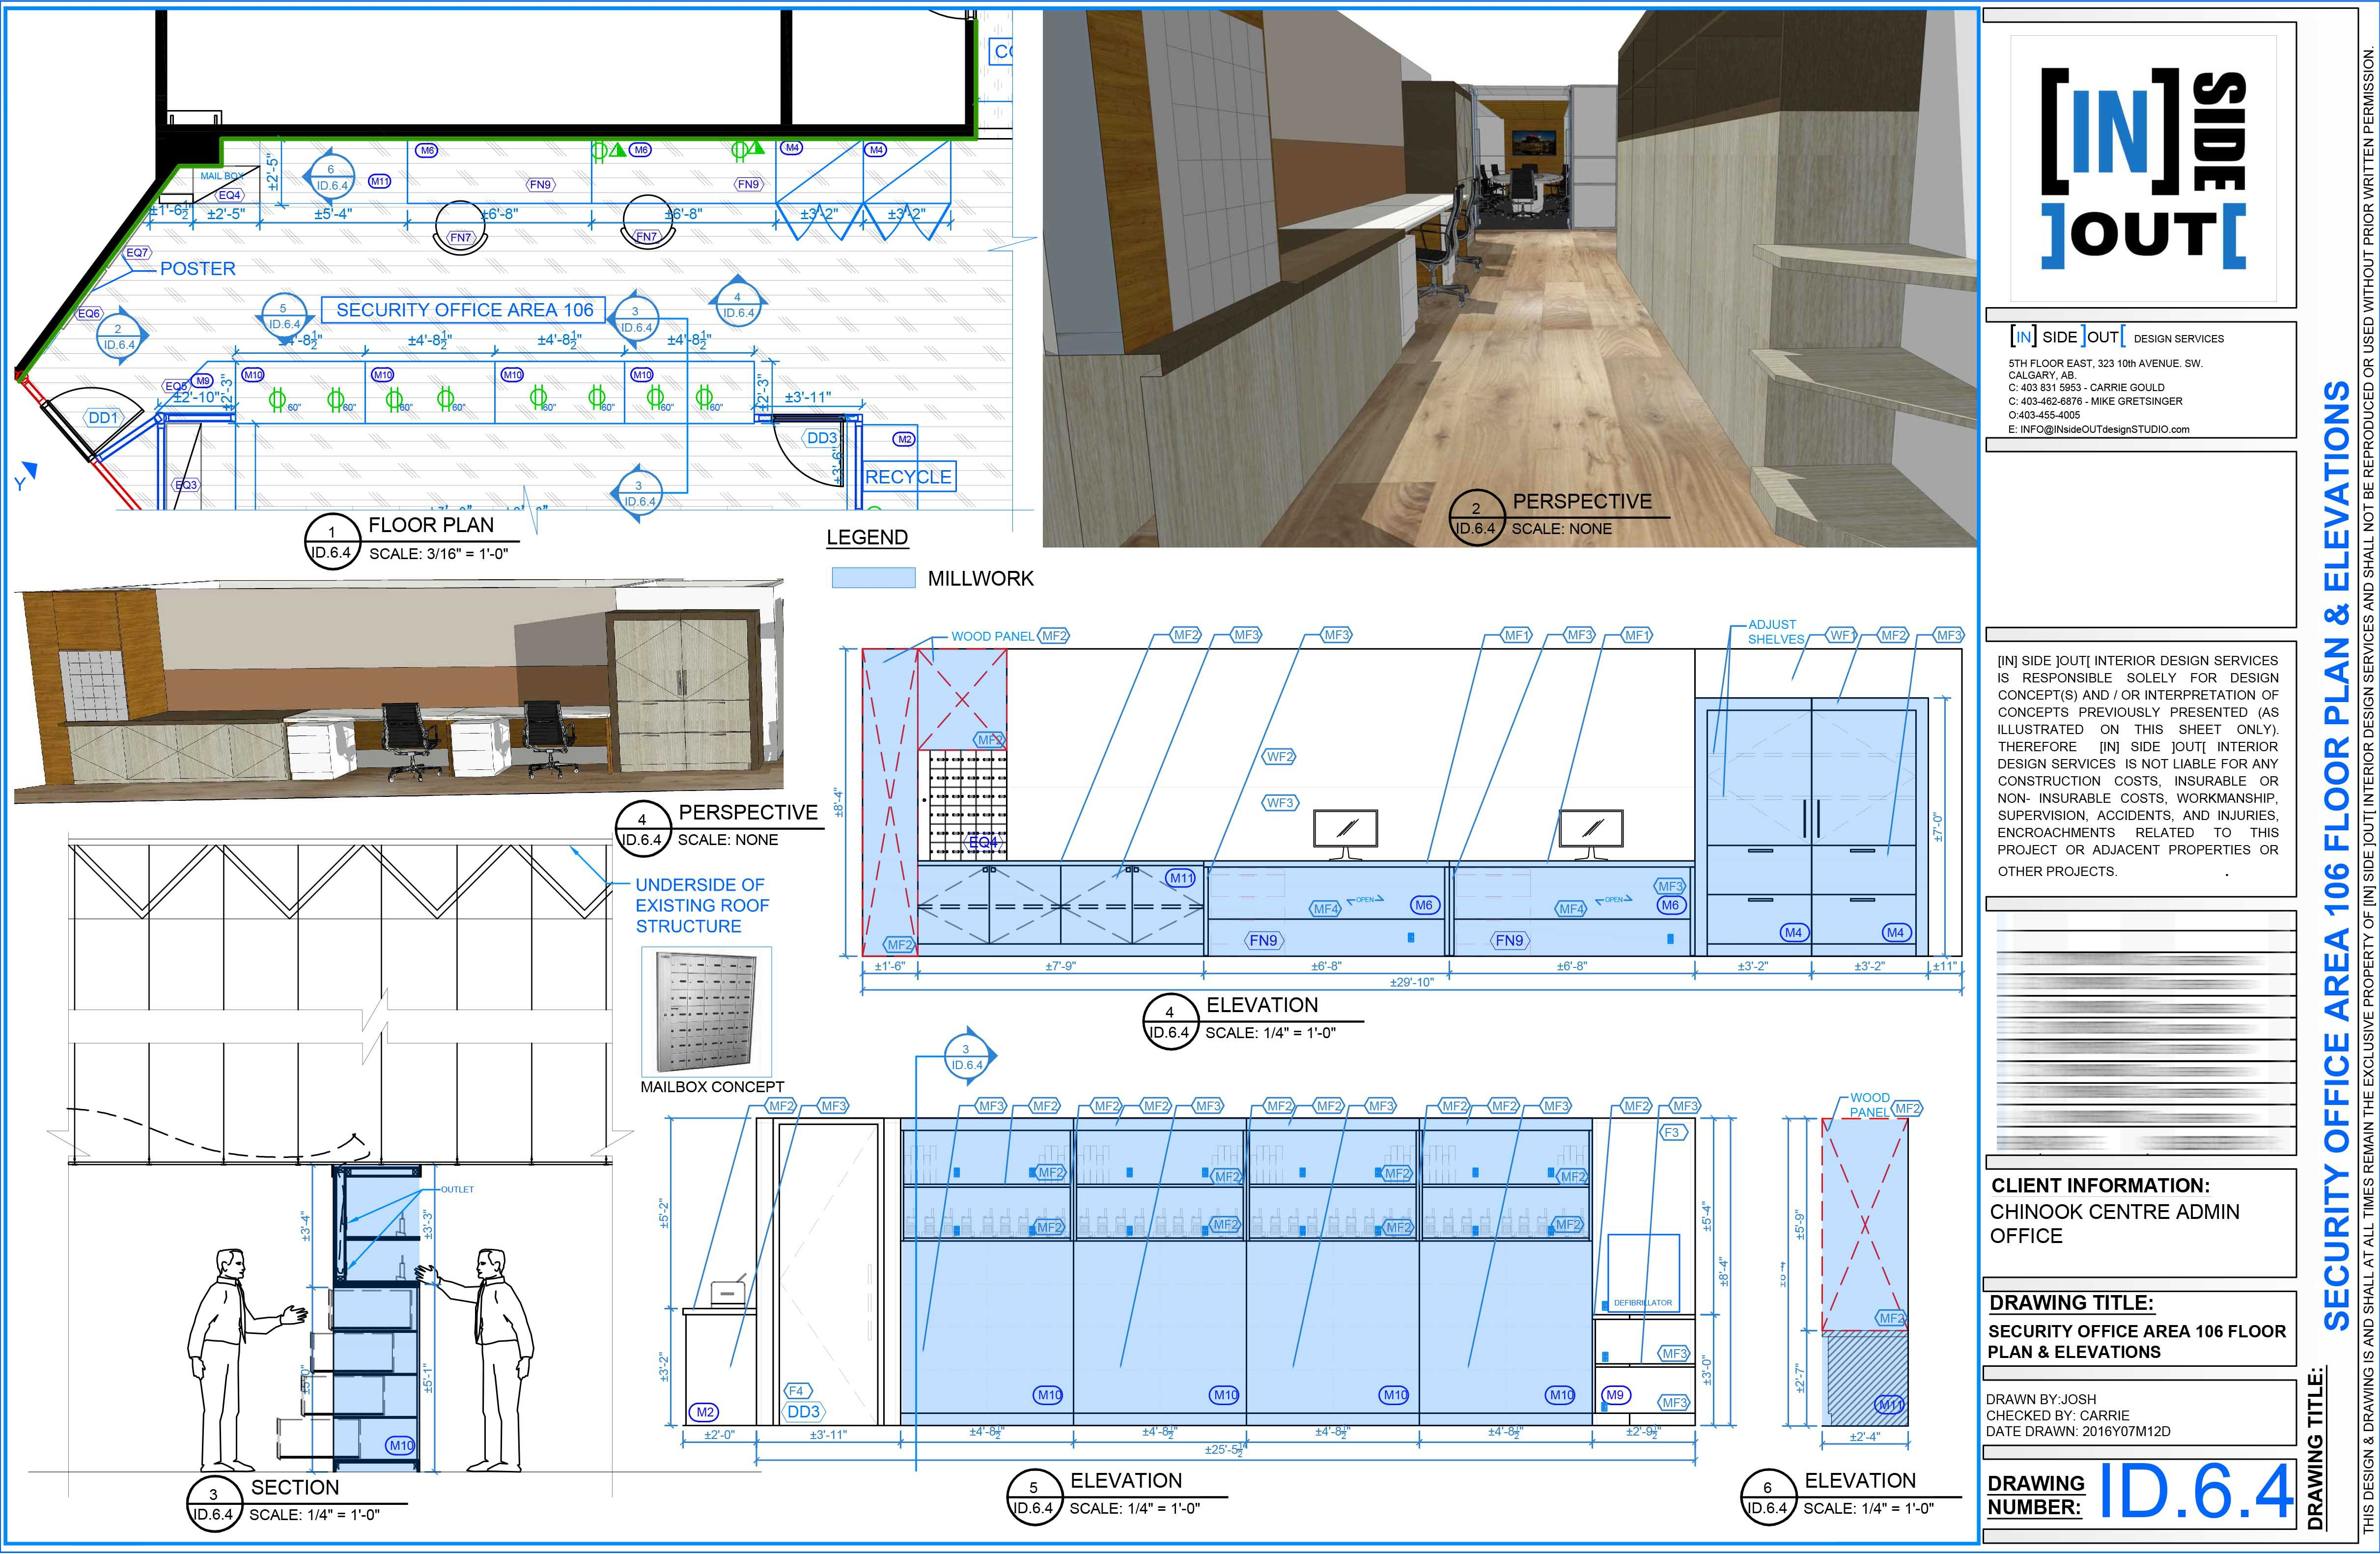 Drawn office admin office CAD CONCEPT PLAN CONCEPT DESIGN